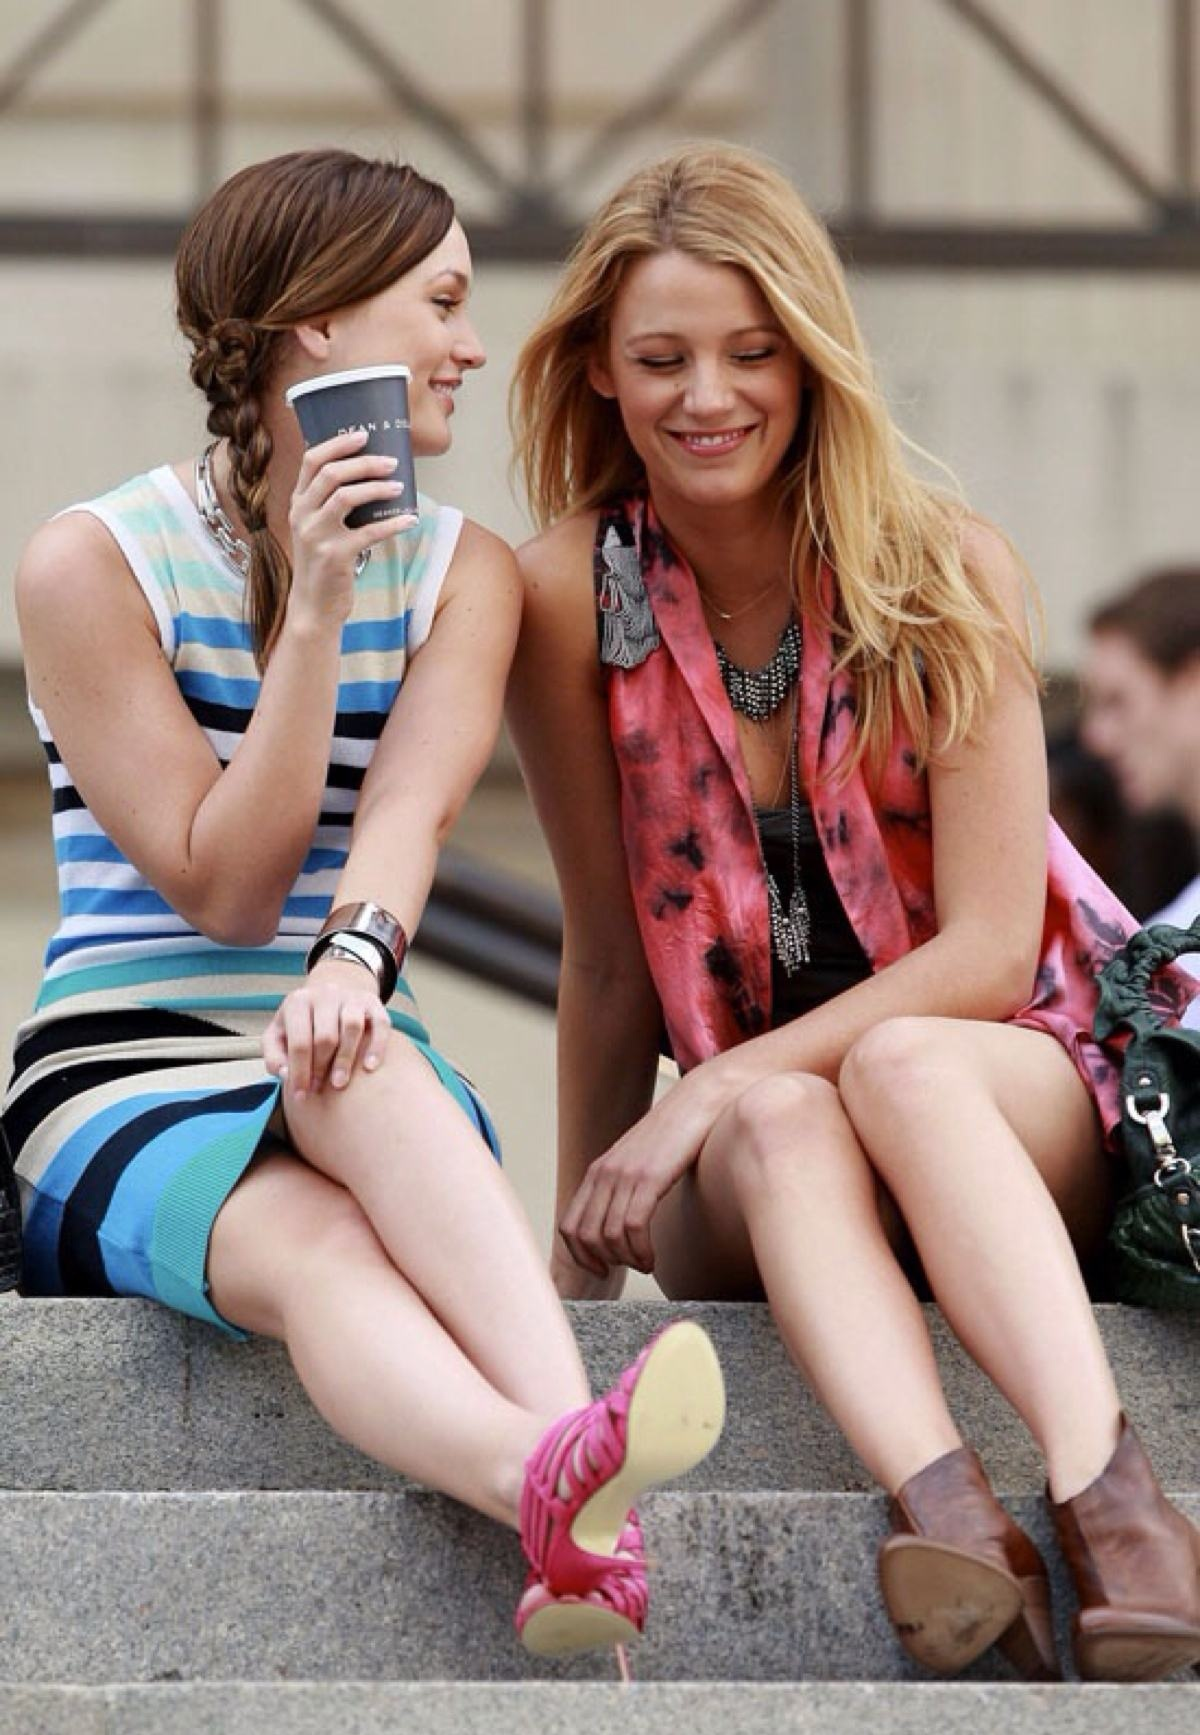 Fashion in gossip girl 27